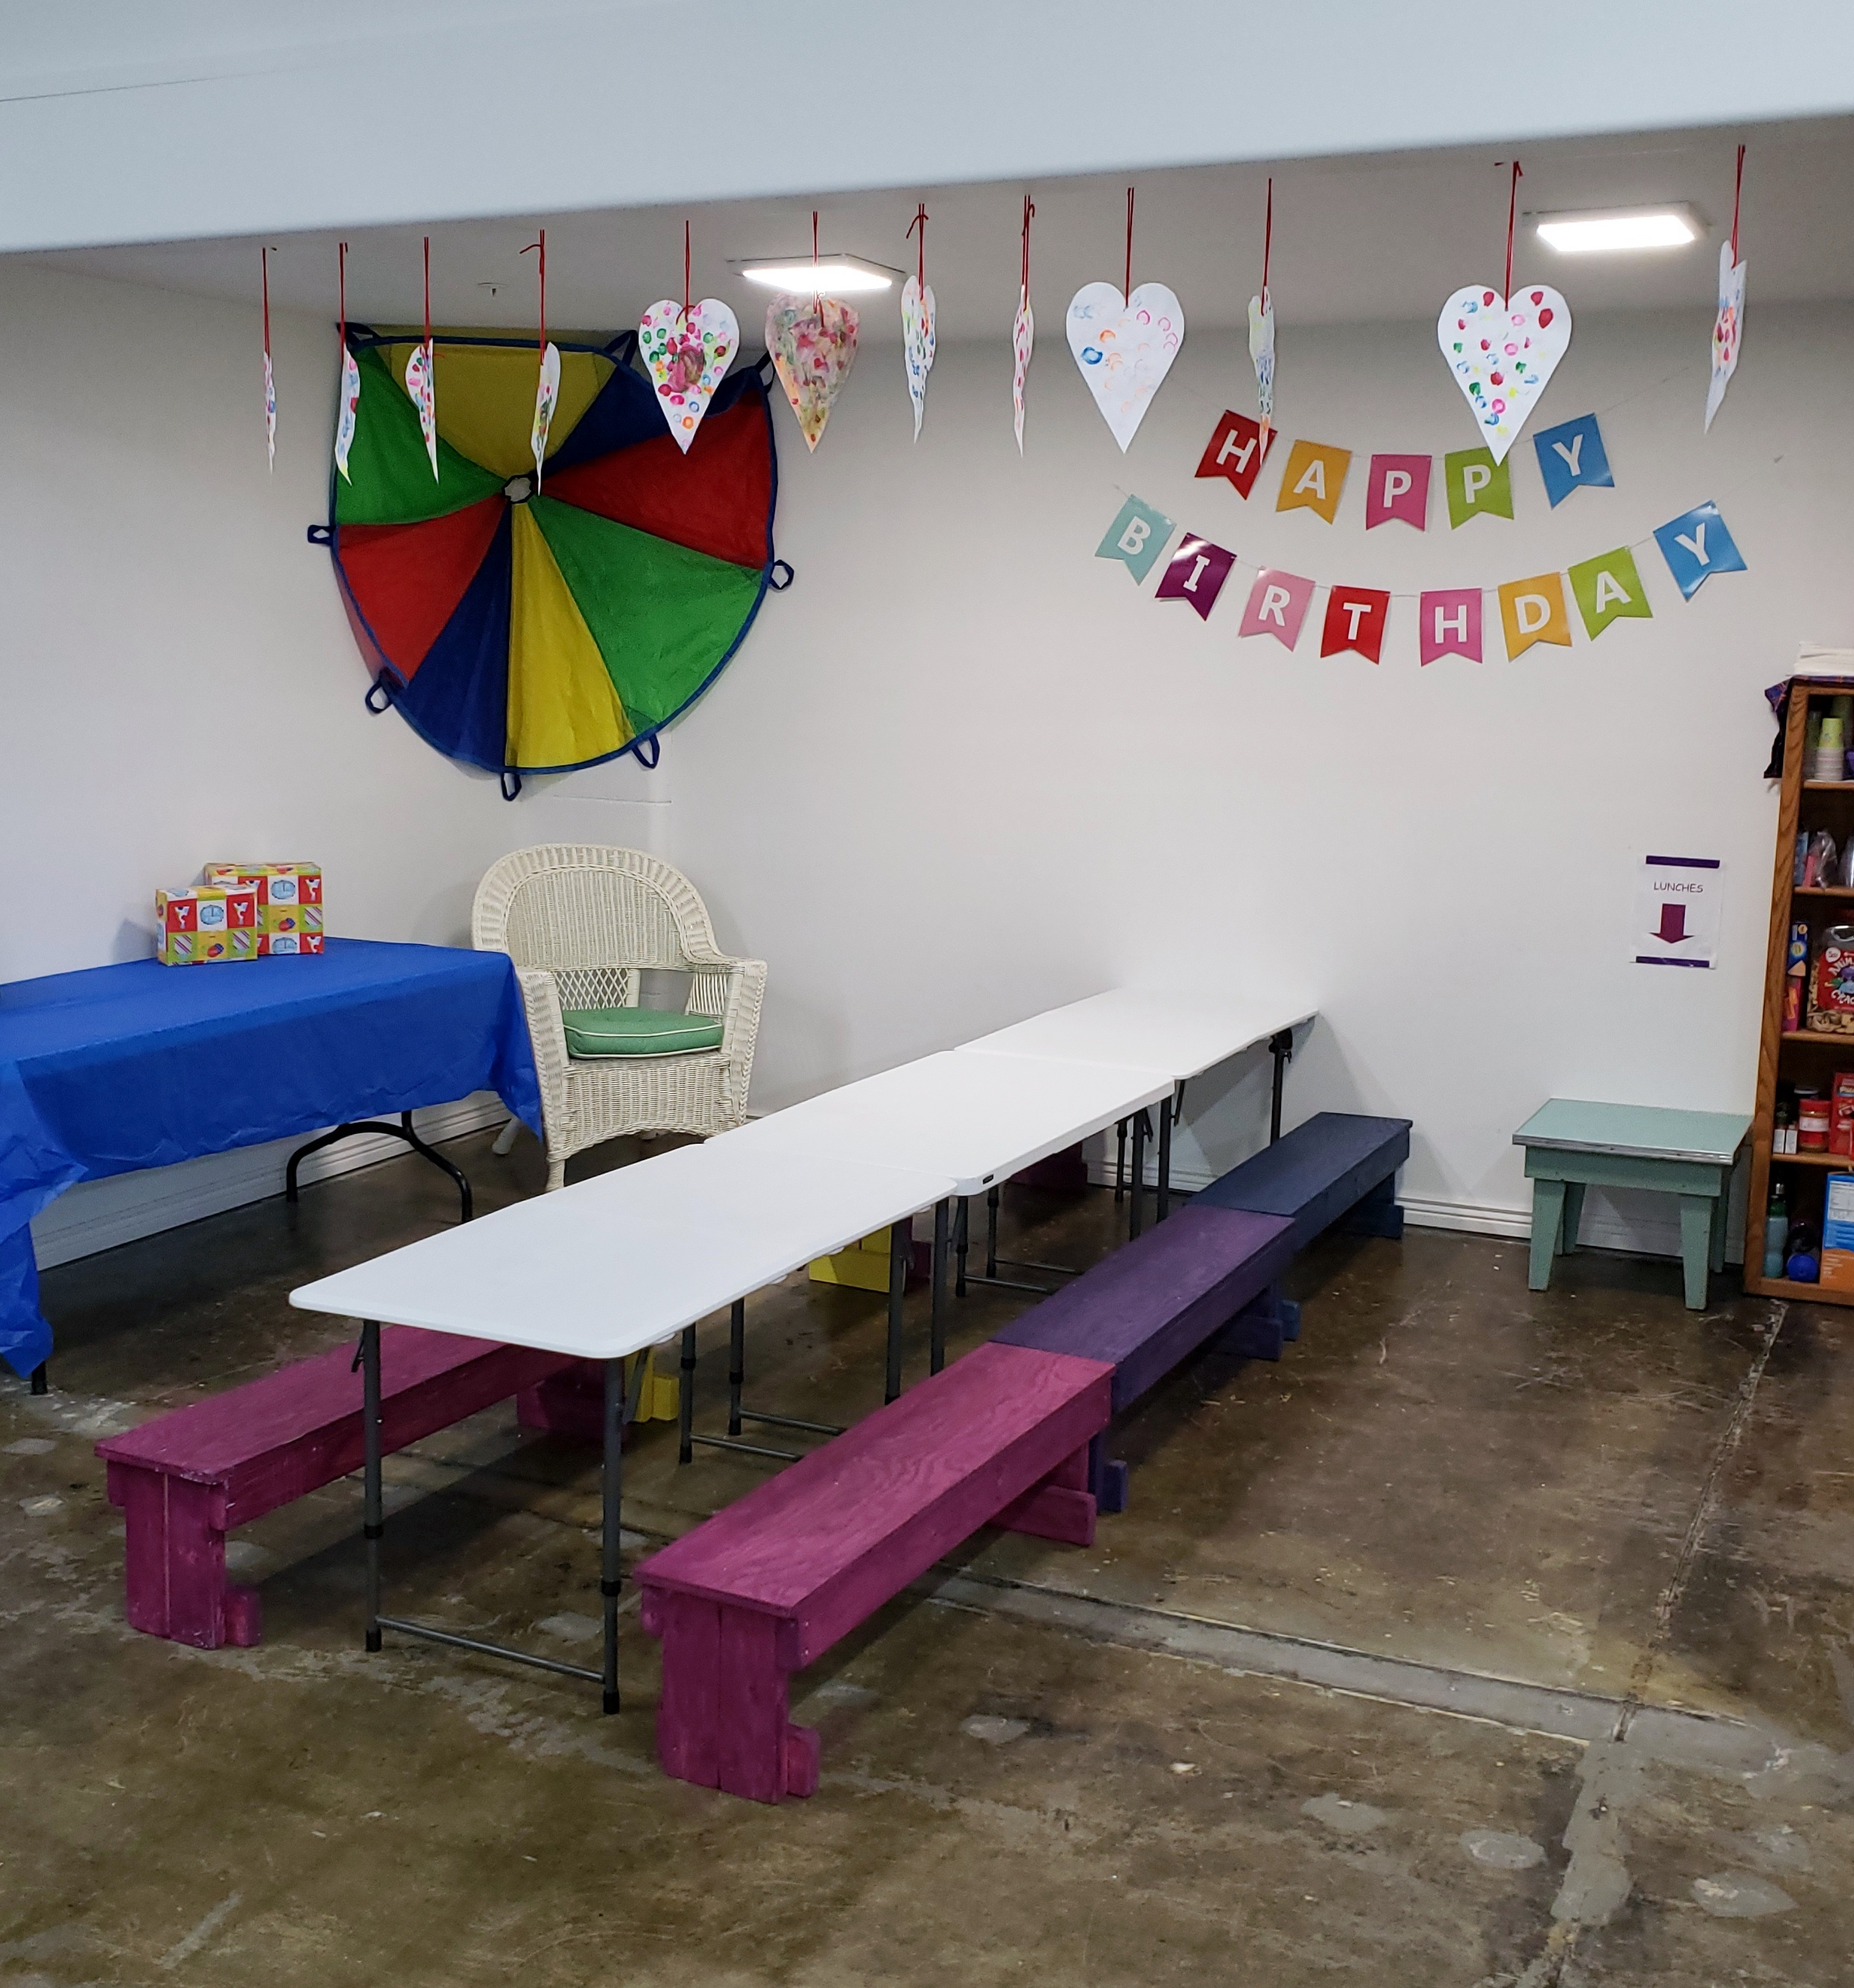 Party area- - Includes sink, counter, refrigerator, freezer, tables, chairs, benches. A variety of seating options are available to meet your needs.